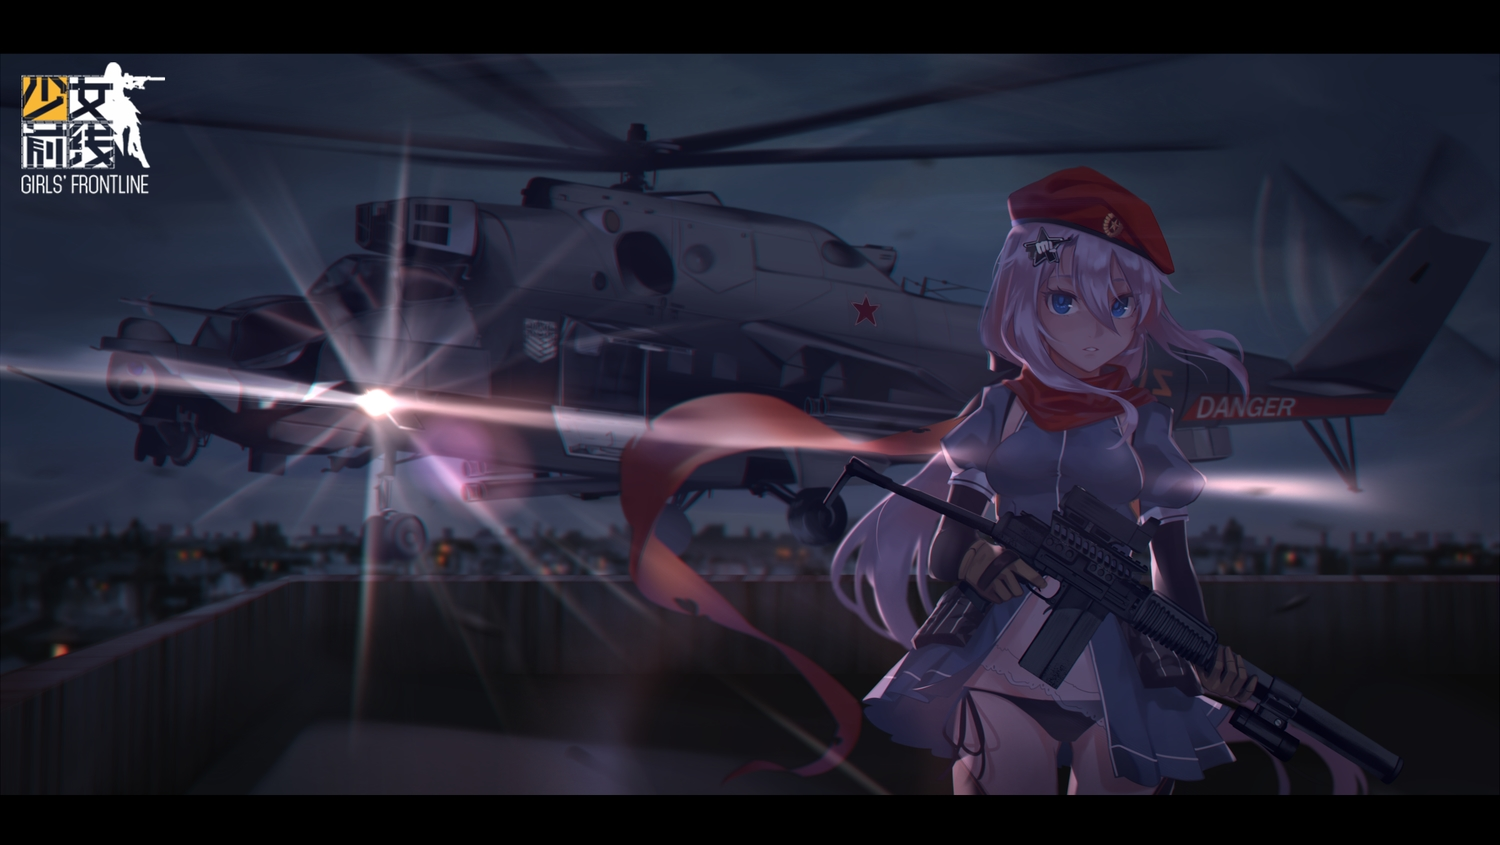 9a 91 Girls Frontline Aircraft Anthropomorphism Girls Frontline Images, Photos, Reviews